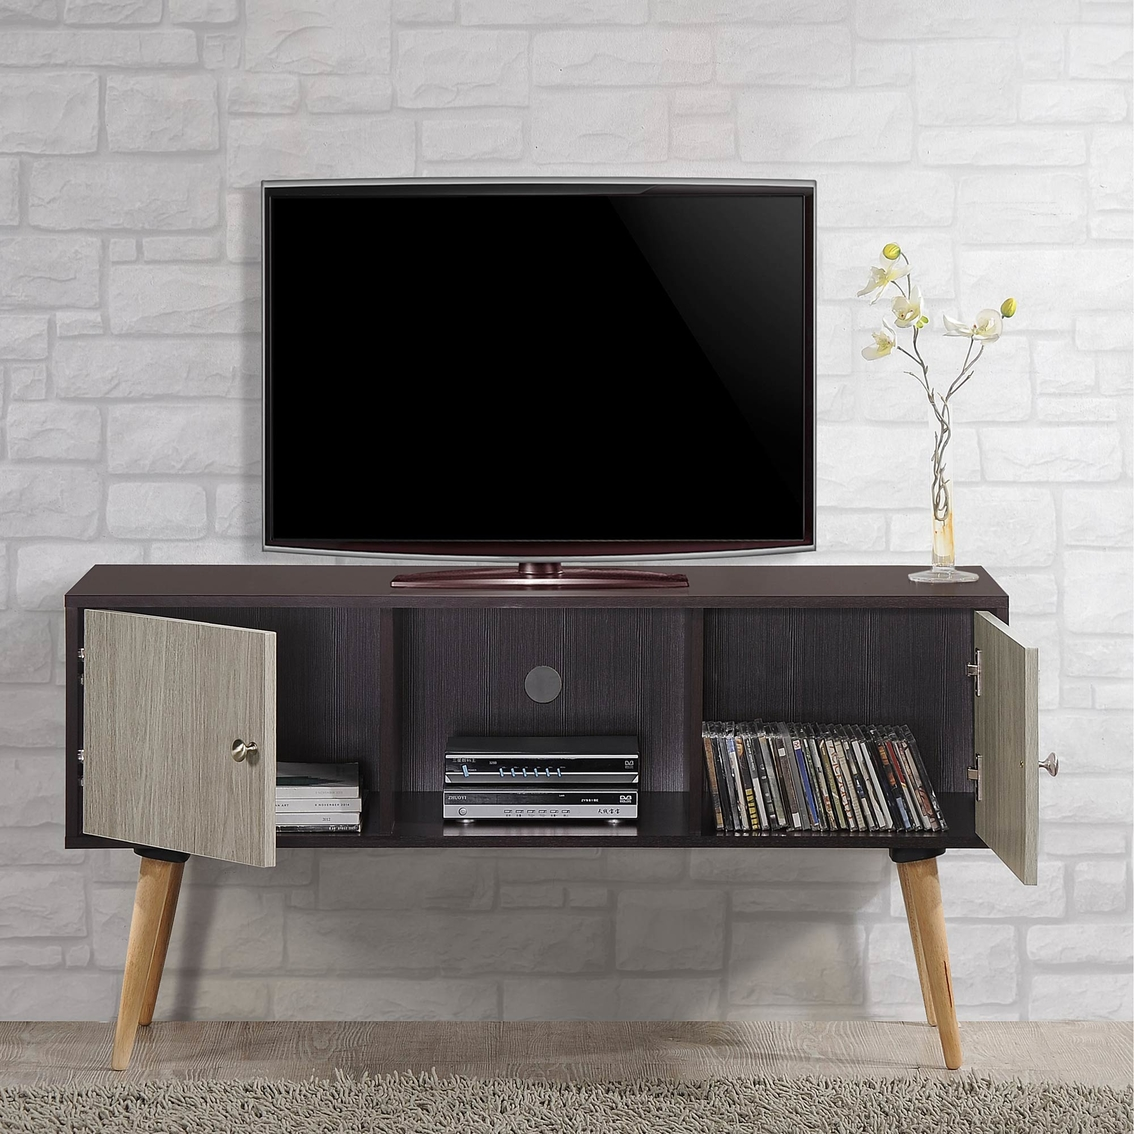 Hodedah retro style entertainment cabinet media for Hometown furniture exchange